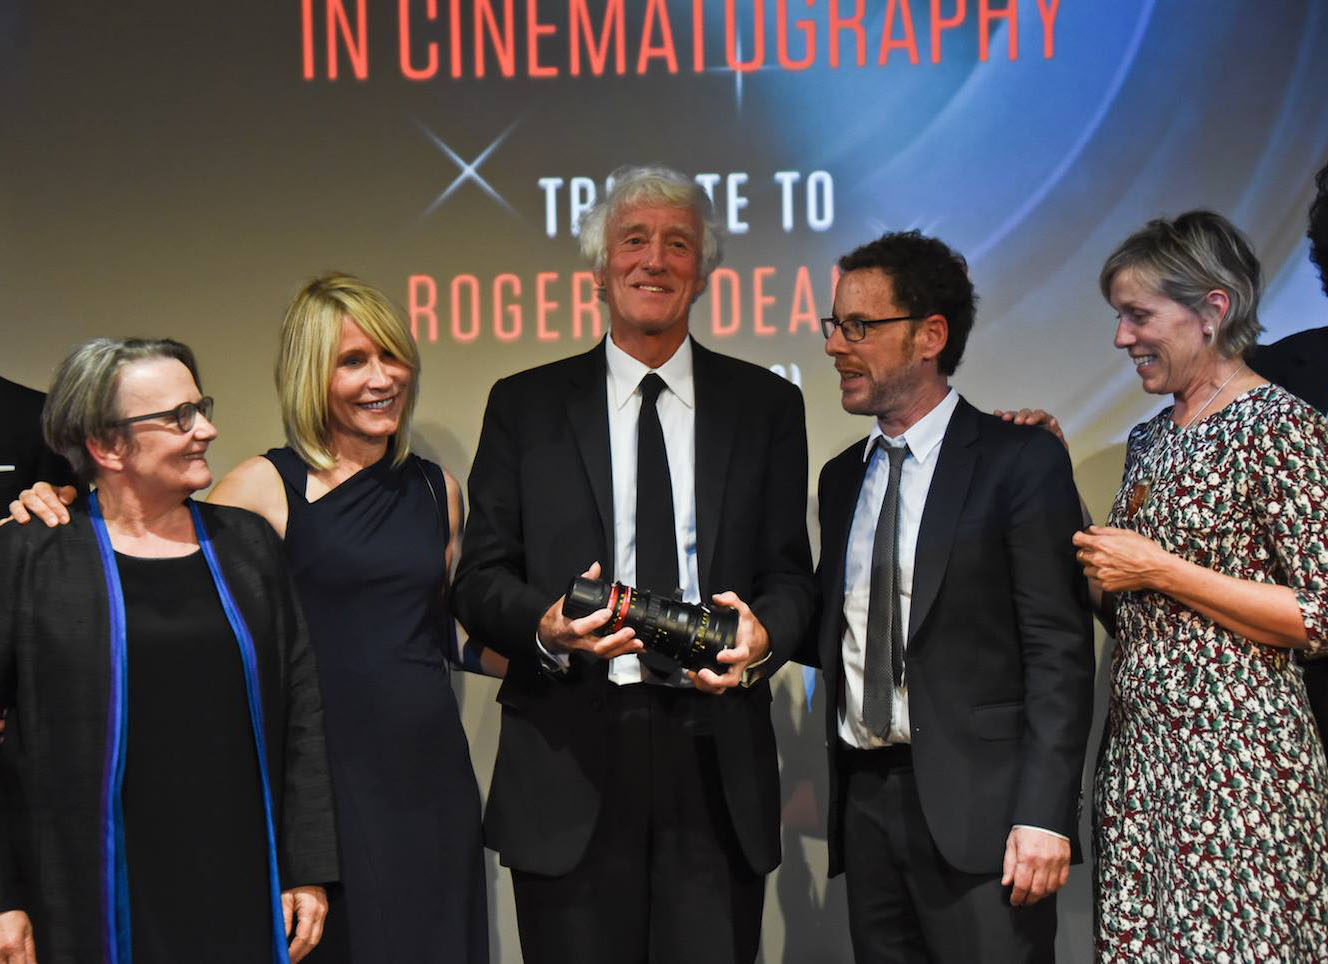 Posing at the ceremony honoring Roger Deakins, ASC, BSC, are (from left): director Agnieszka Holland, James and Roger Deakins, director Ethan Coen and actor Frances McDormand. (Credit: Angenieux/Pauline Maillet)